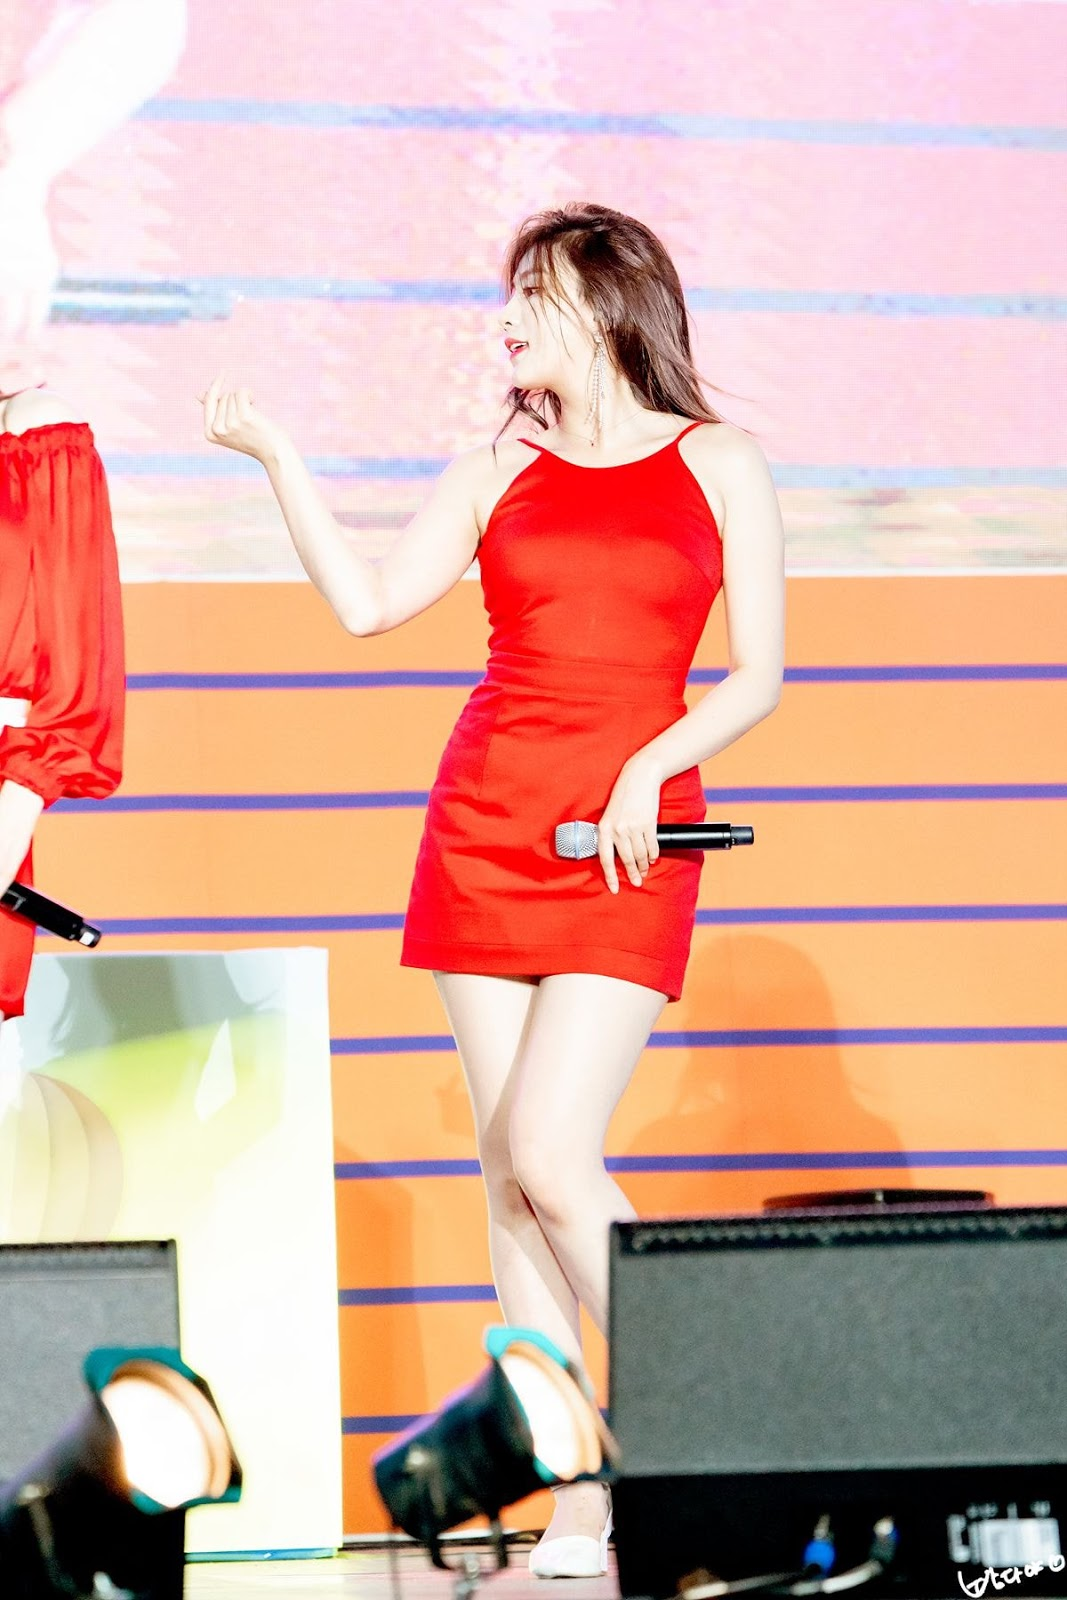 tallest - hayoung